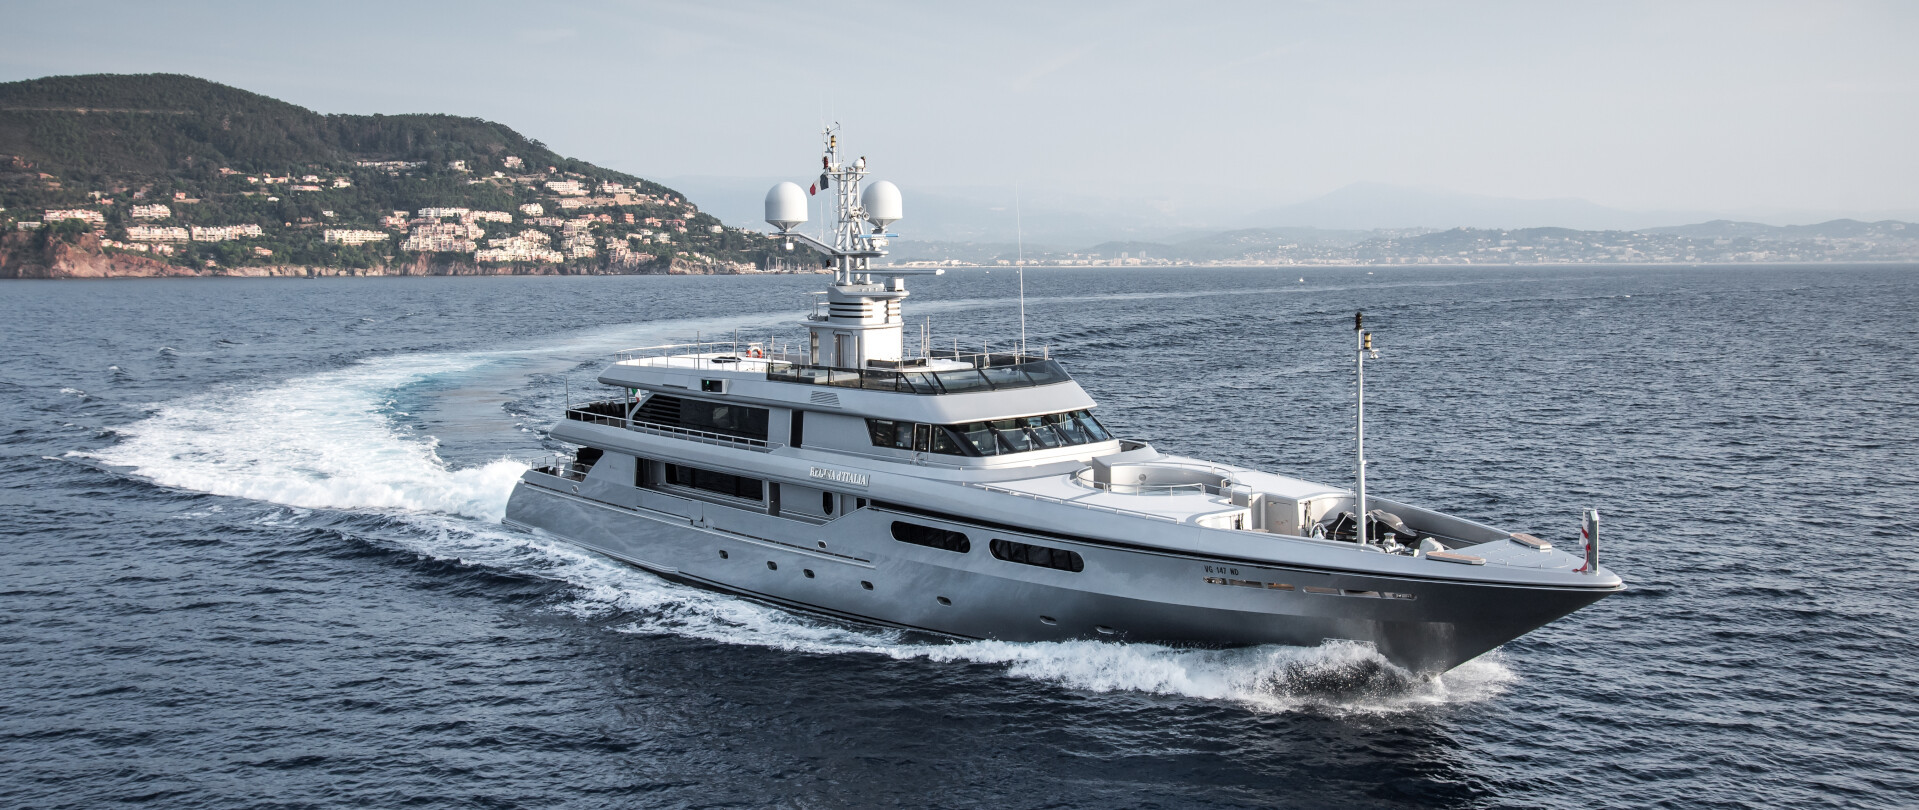 Regina d'Italia II - Available for inspection during the 2019 Cannes Yachting Festival photo 1